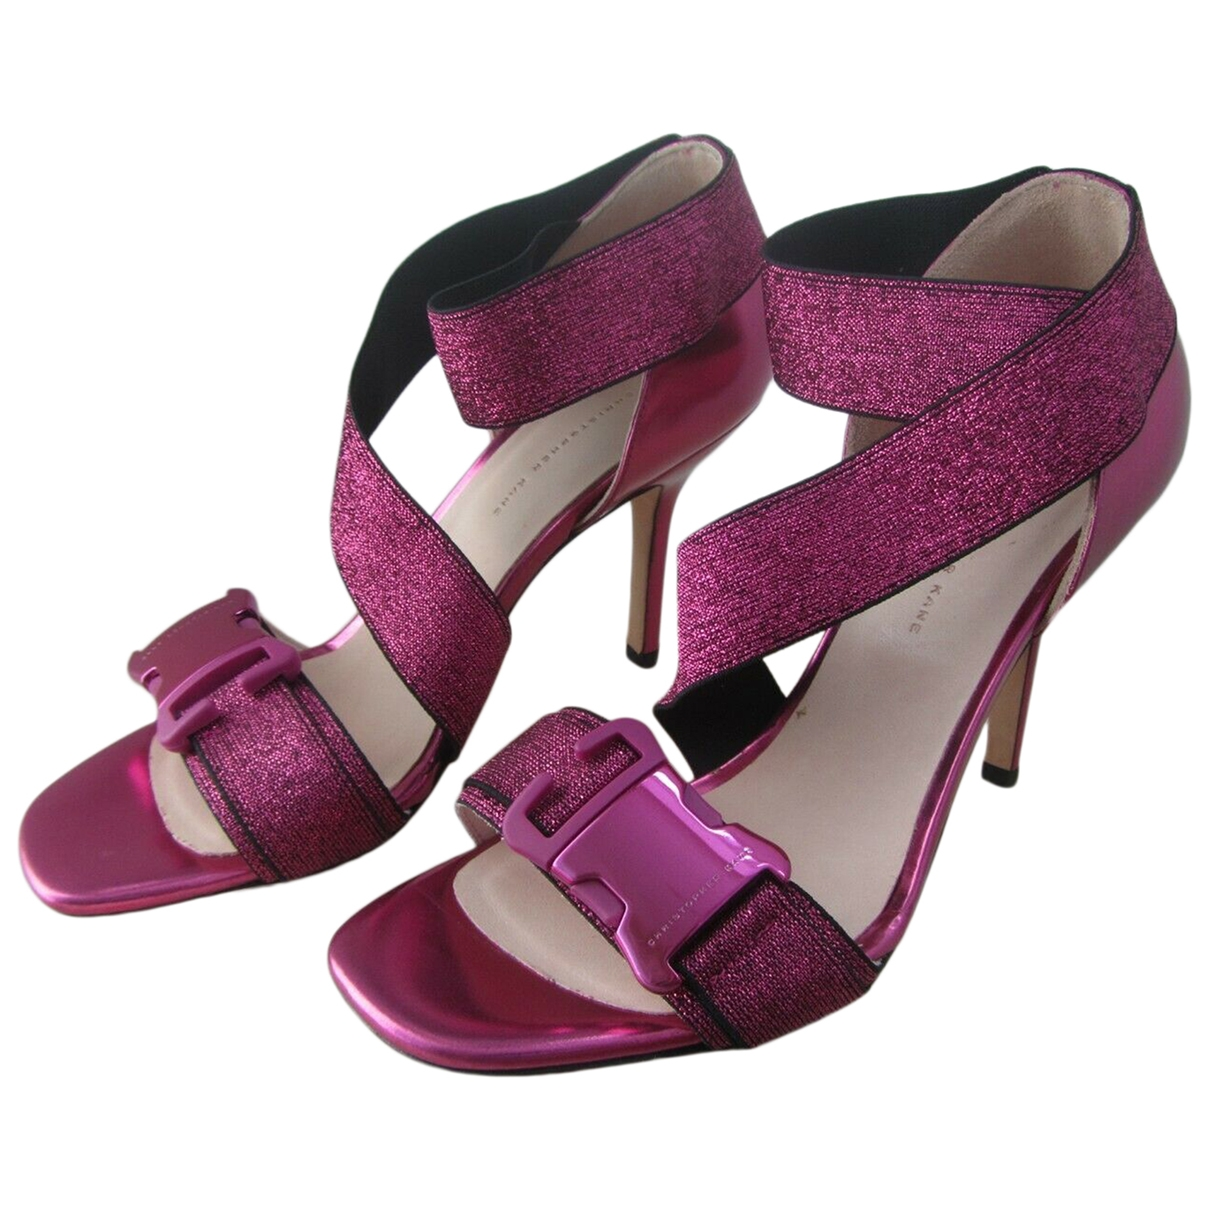 Christopher Kane \N Pink Leather Heels for Women 38 EU